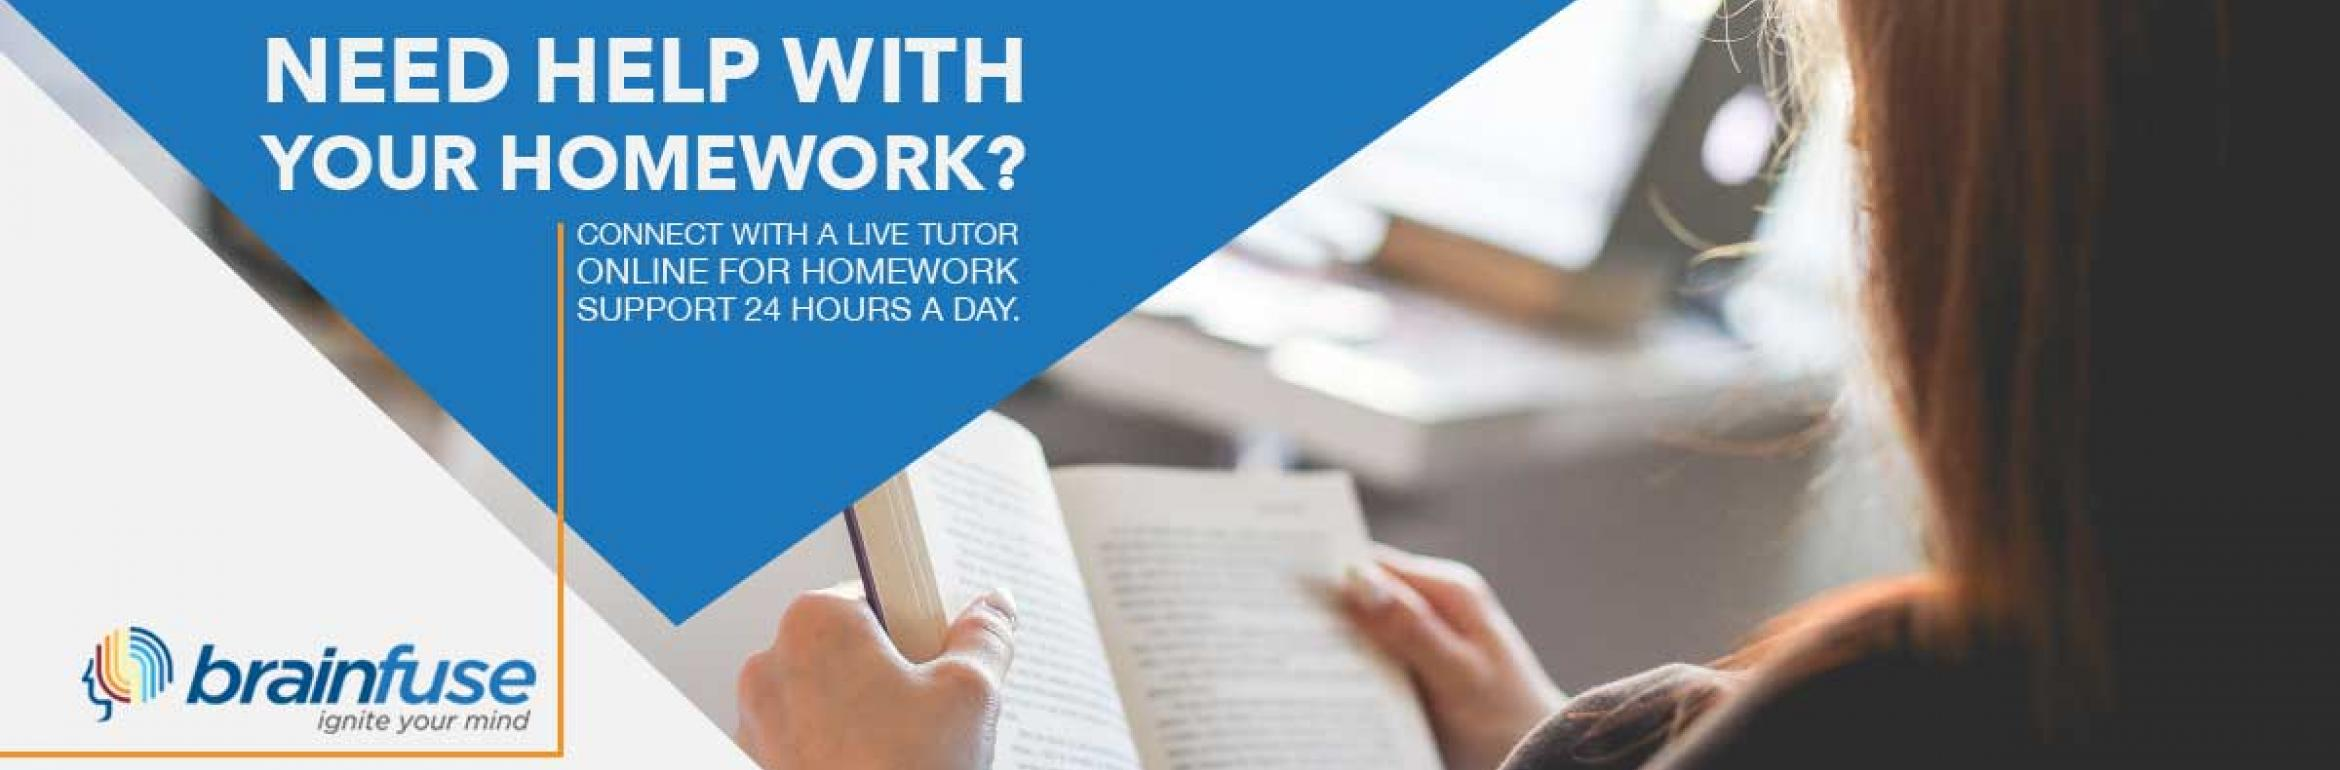 Brainfuse: Need help with your homework? Connect with a live tutor online for homework support 24 hours a day.